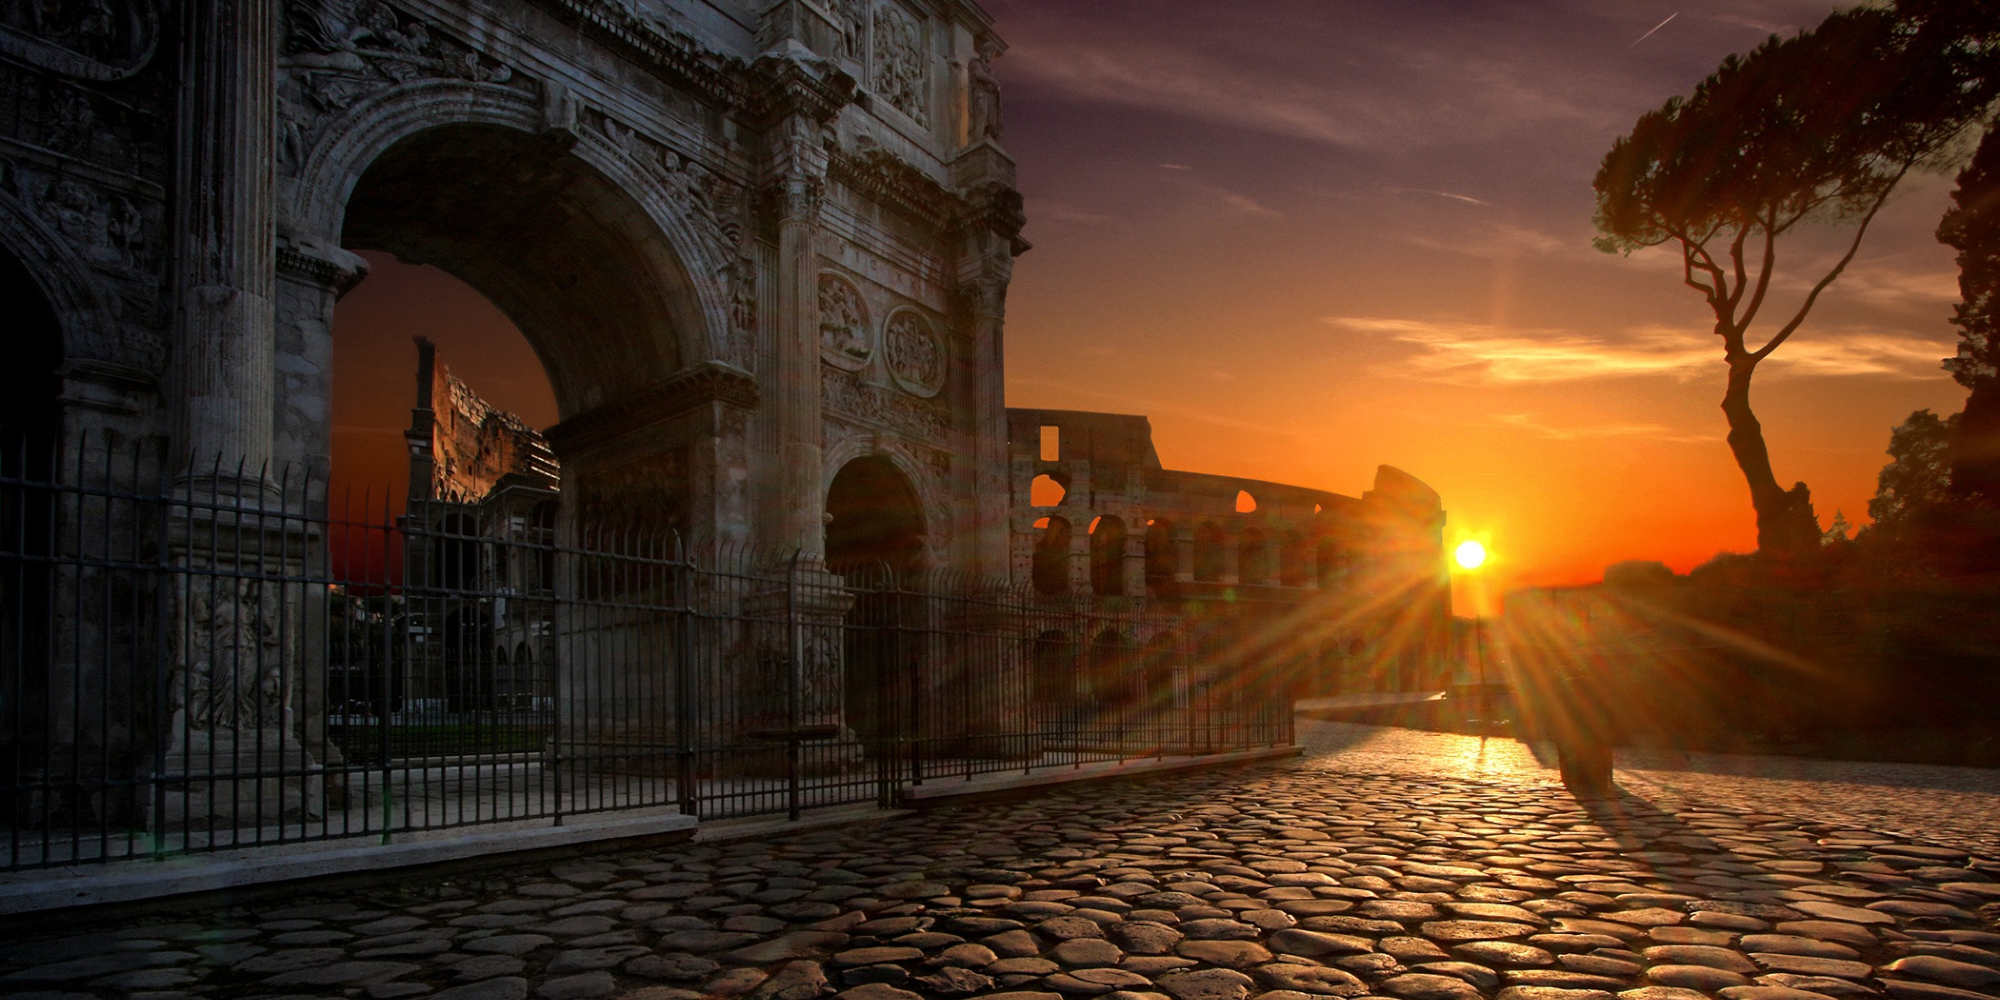 ITINERARIES, GASTRONOMY AND TRADITION: ROME, PART ONE